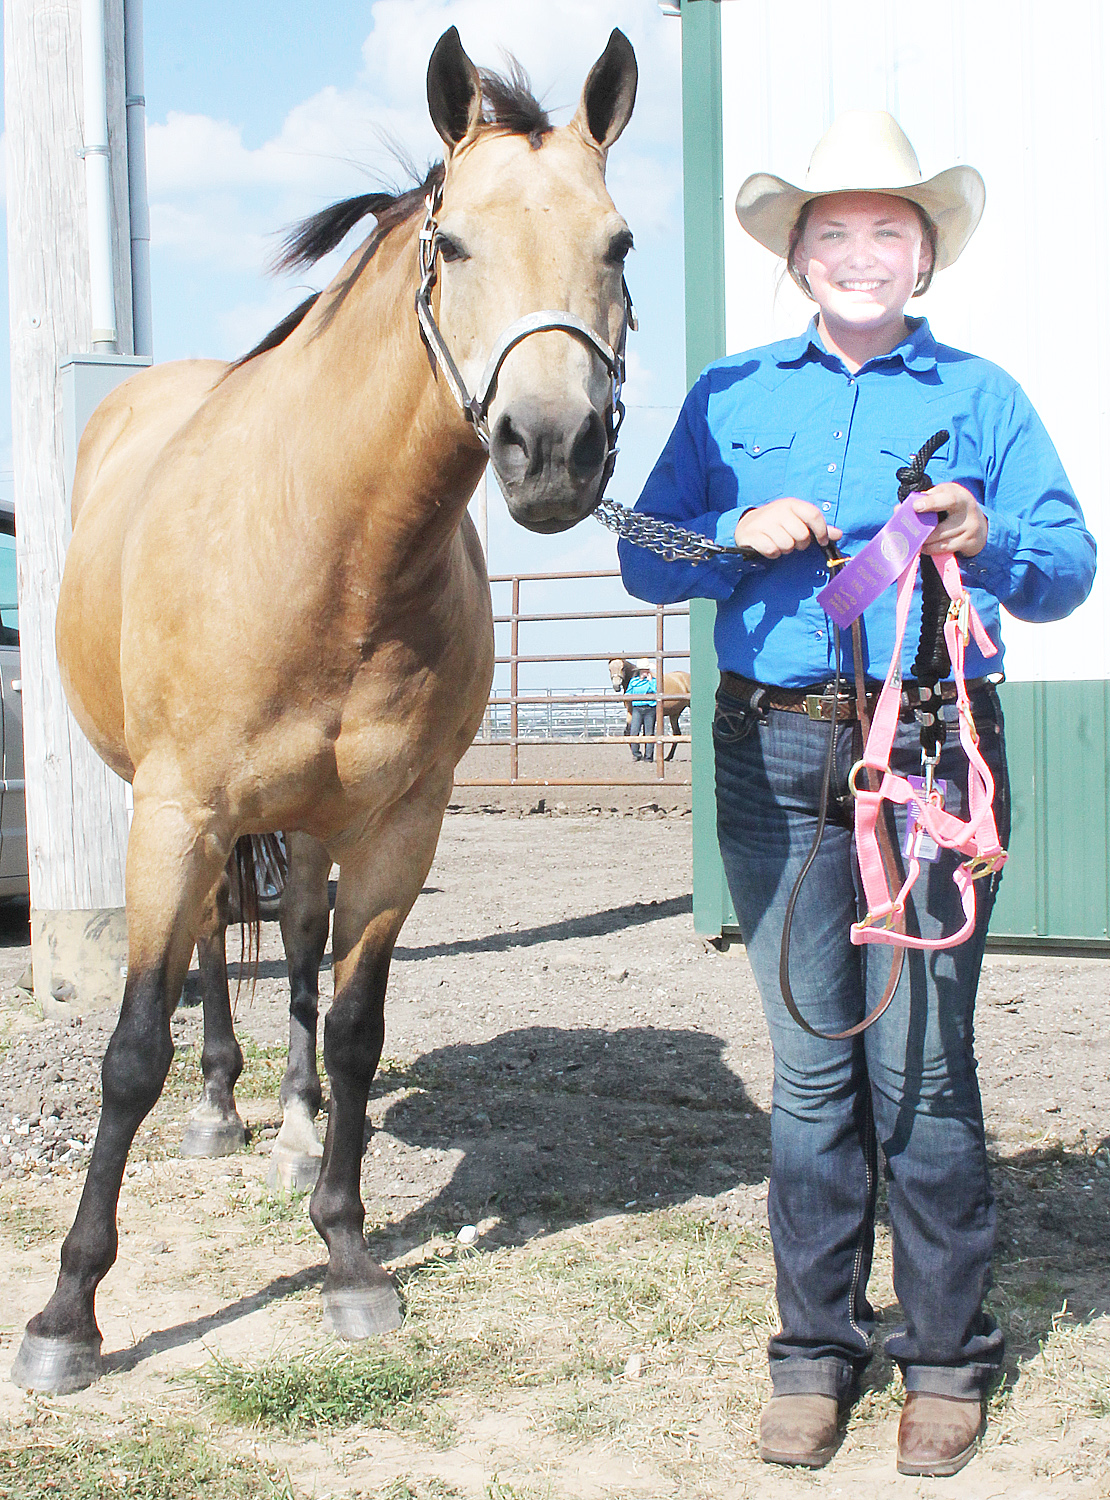 Jerilyn Nelson of the Pleasant Valley Rustlers showed the reserve grand champion mare and was named champion senior showman at the horse show.